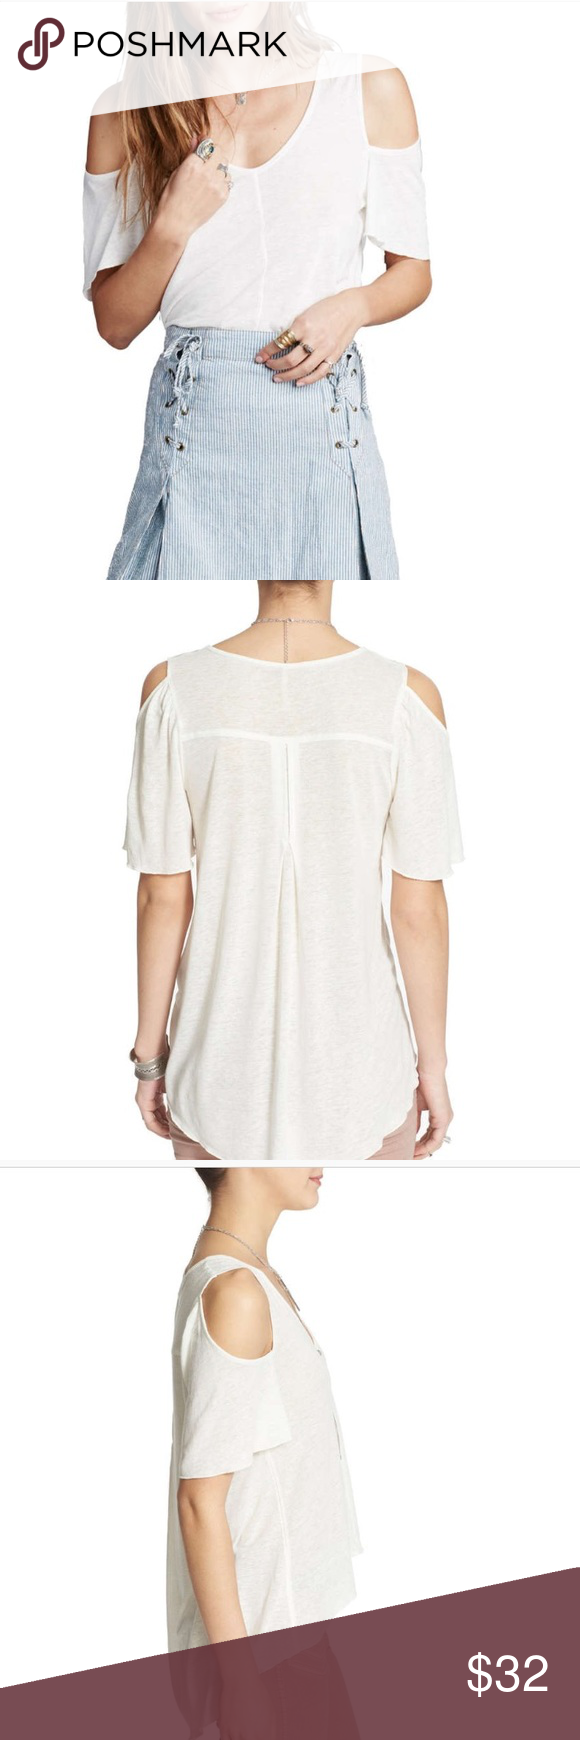 00e3a331b87 Free People bittersweet cold shoulder top For yourself or a gift🎁. Free  People brand is popular with most 👍. Versatile ivory top is a great casual  top ...